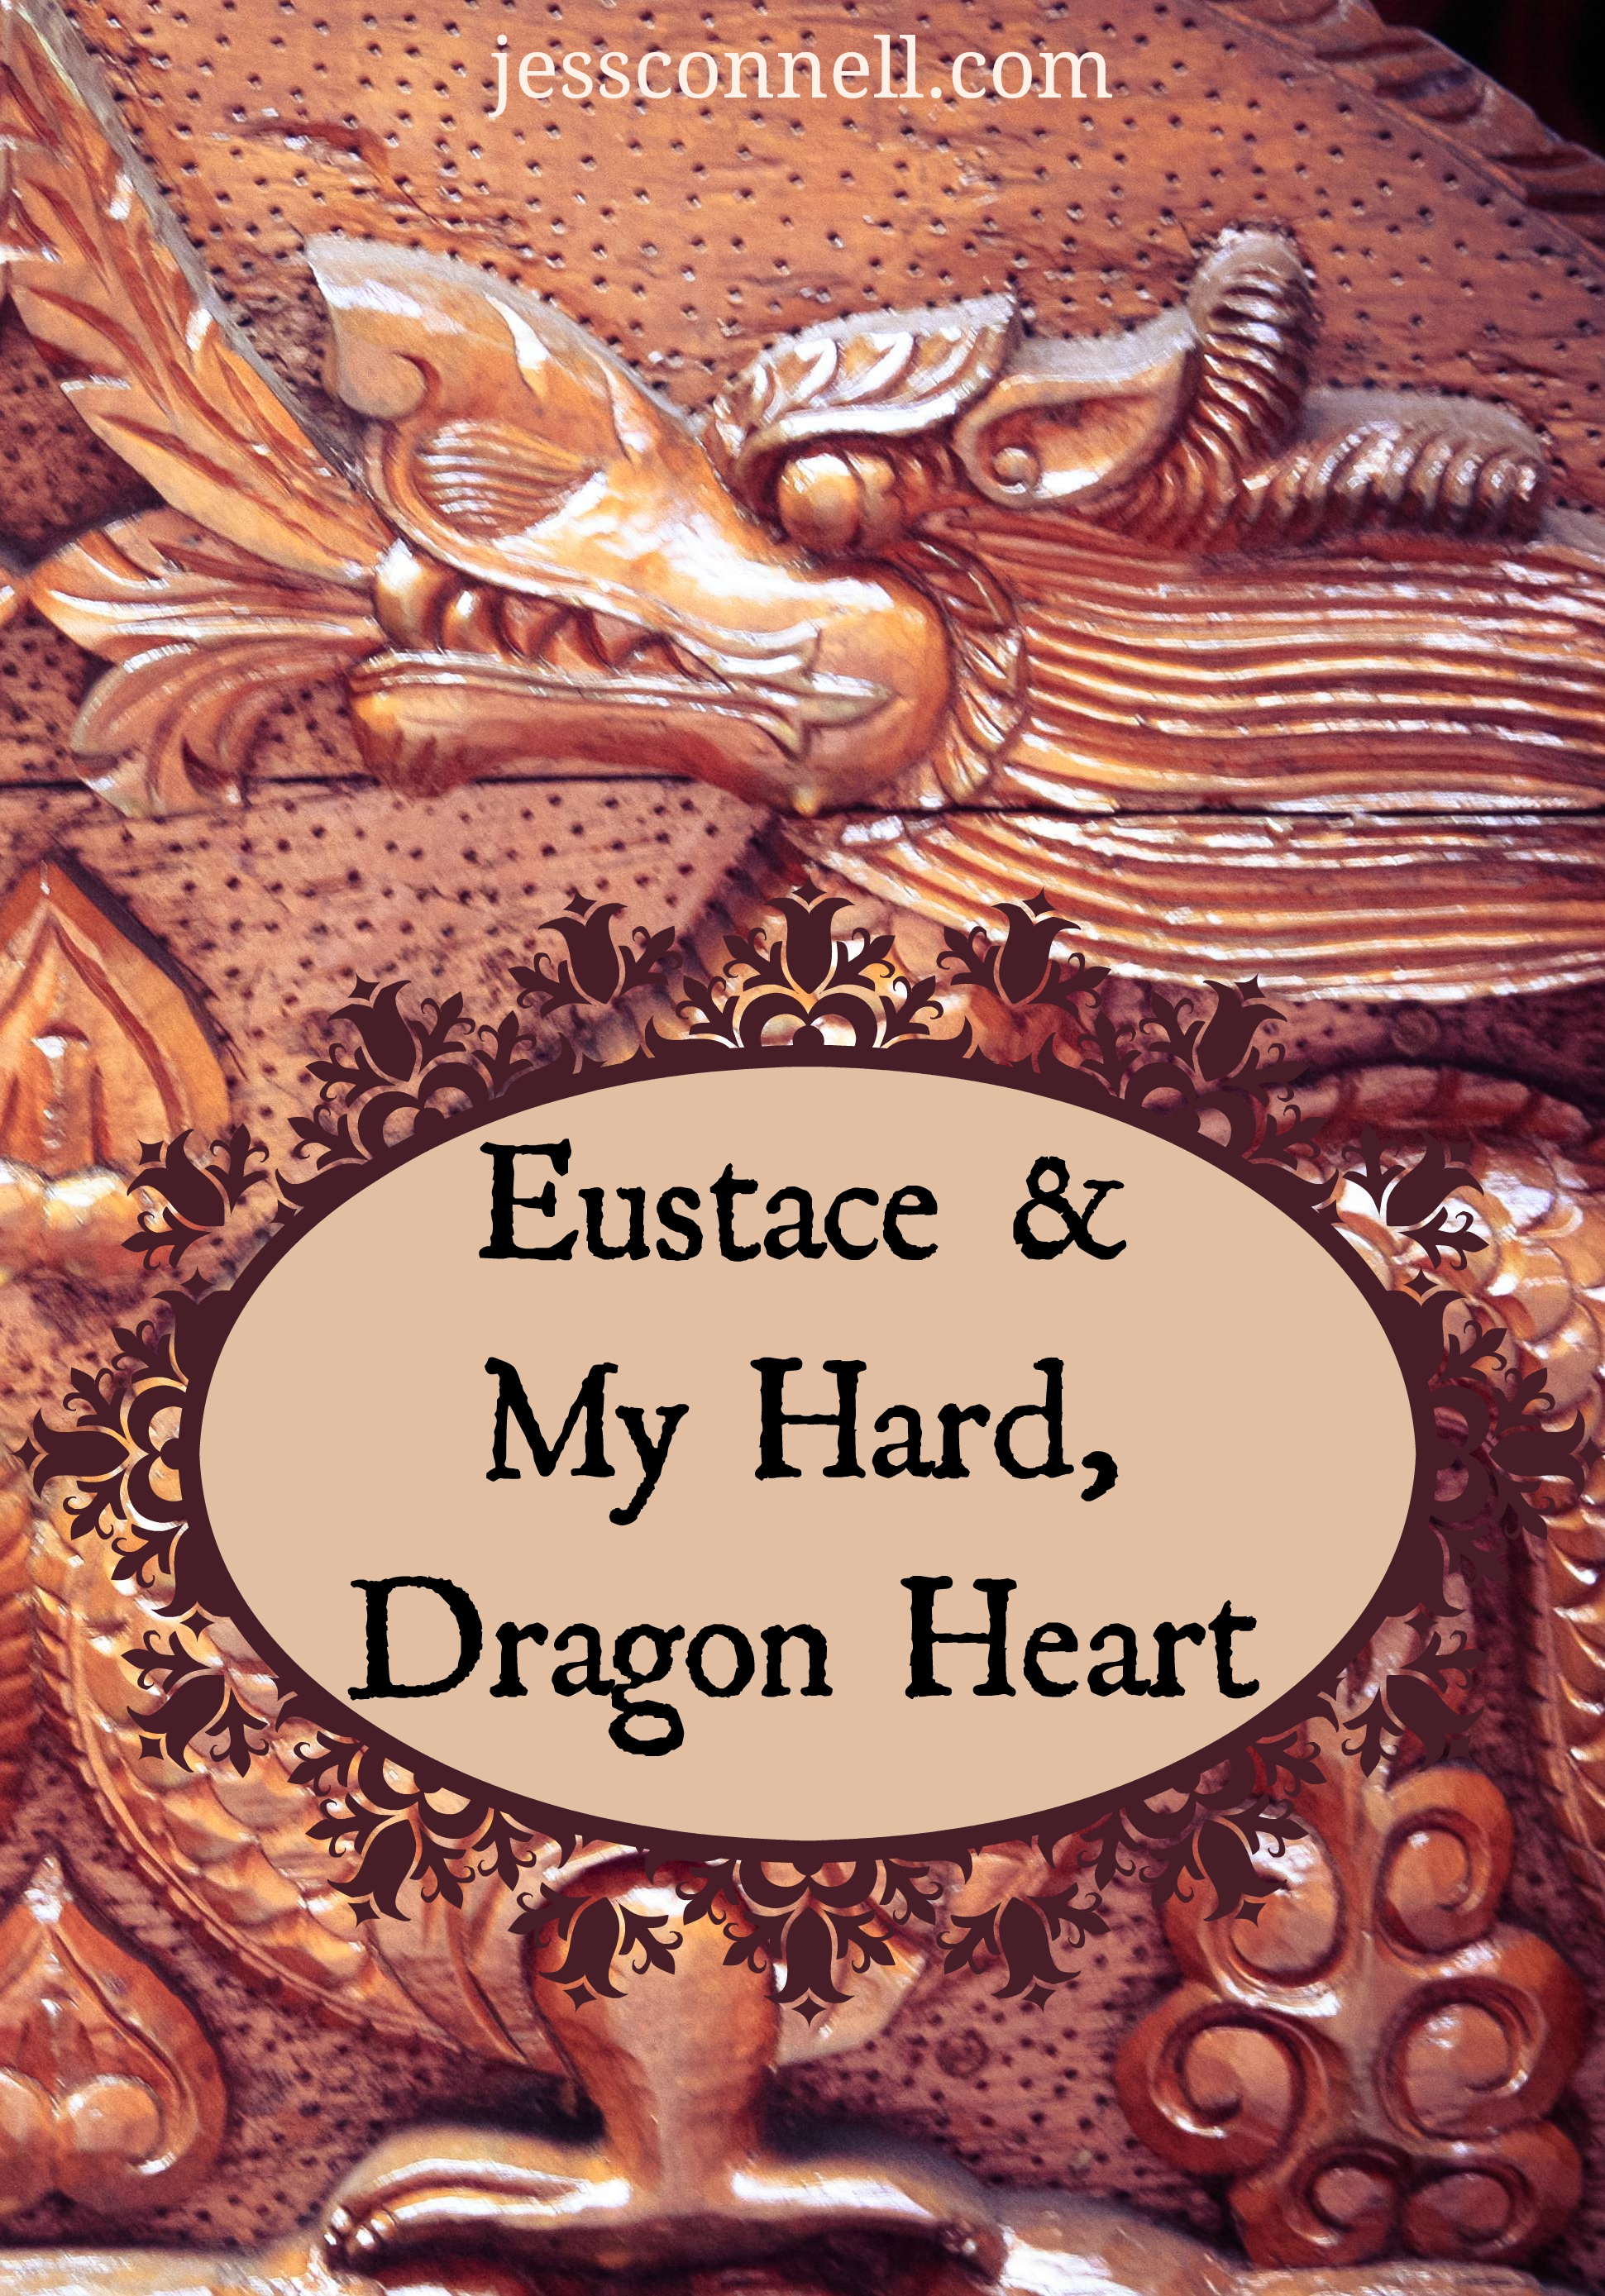 Eustace & My Hard, Dragon Heart // jessconnell.com